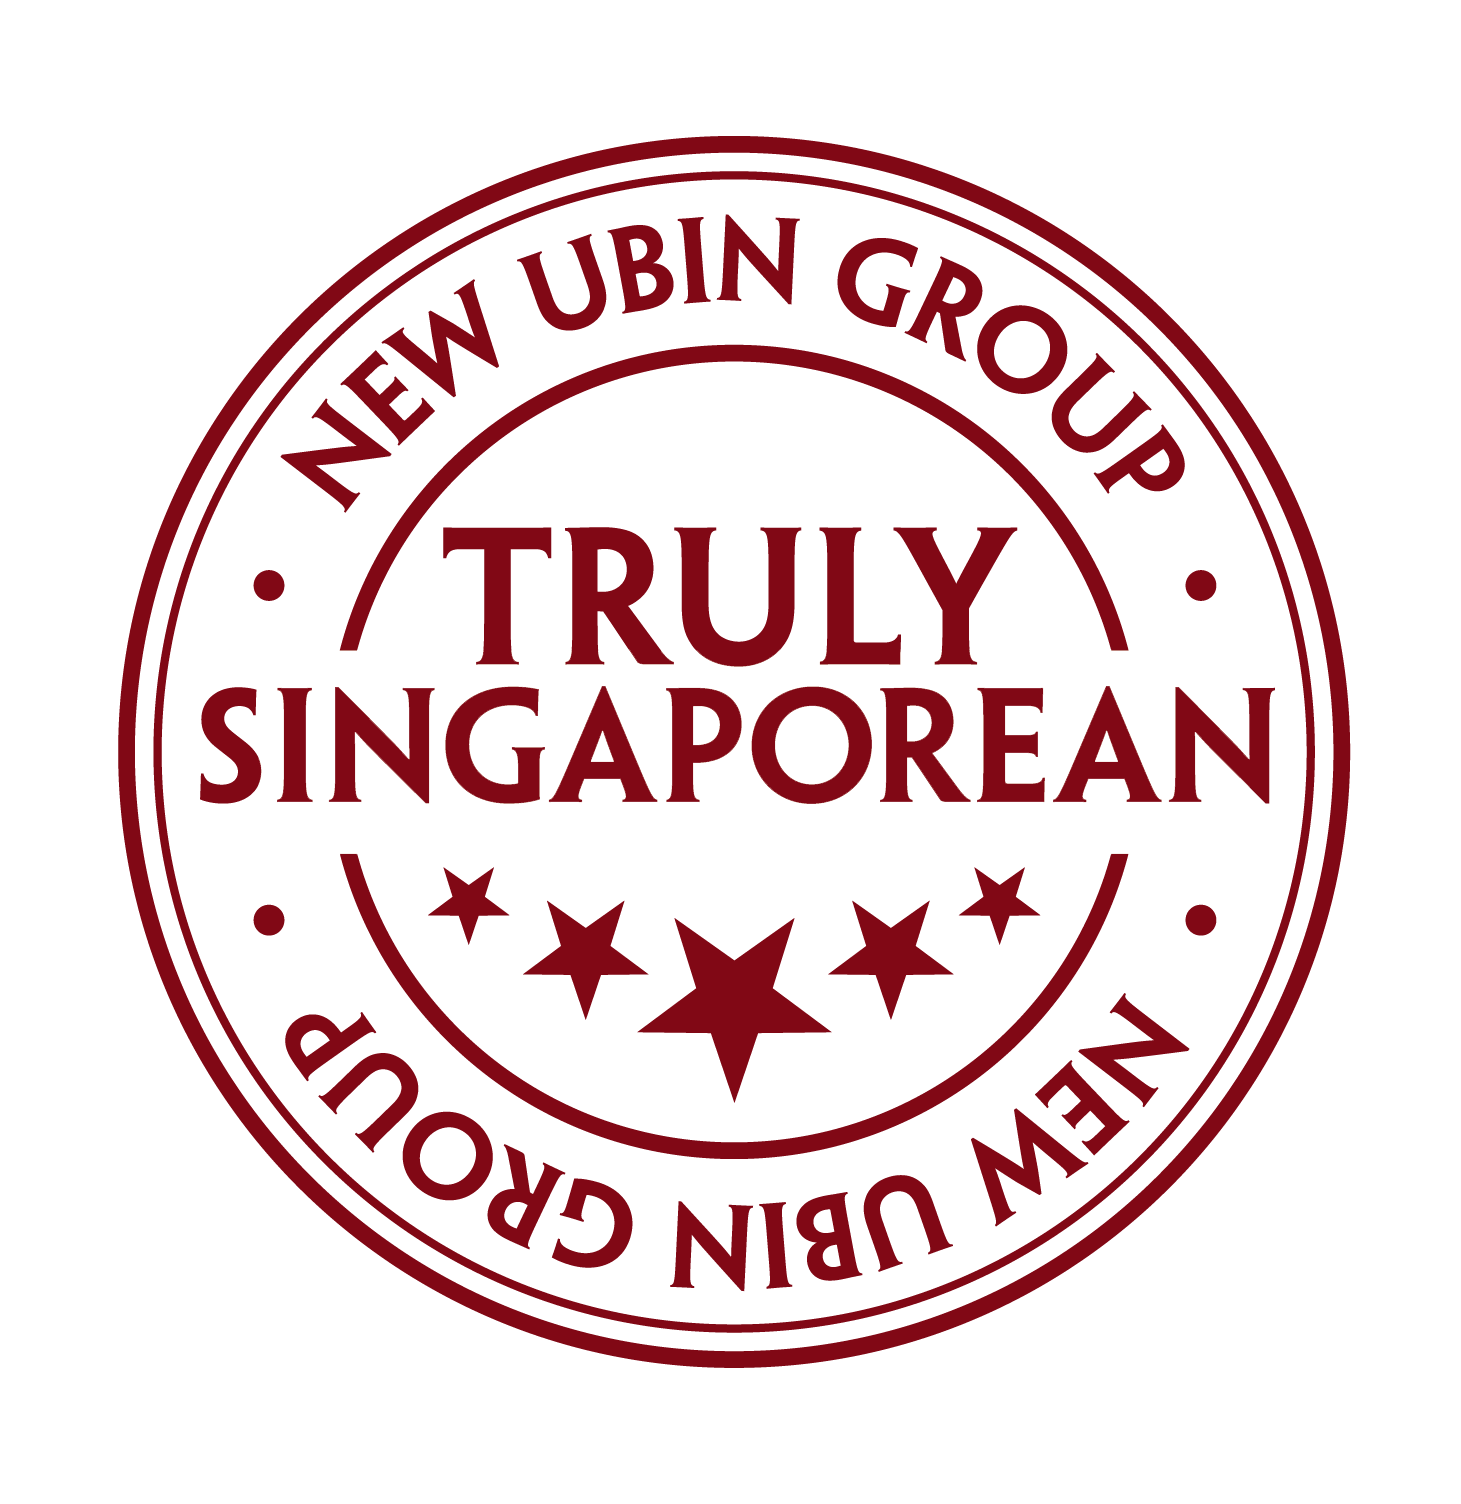 New Ubin Chop NEW copy-01.png